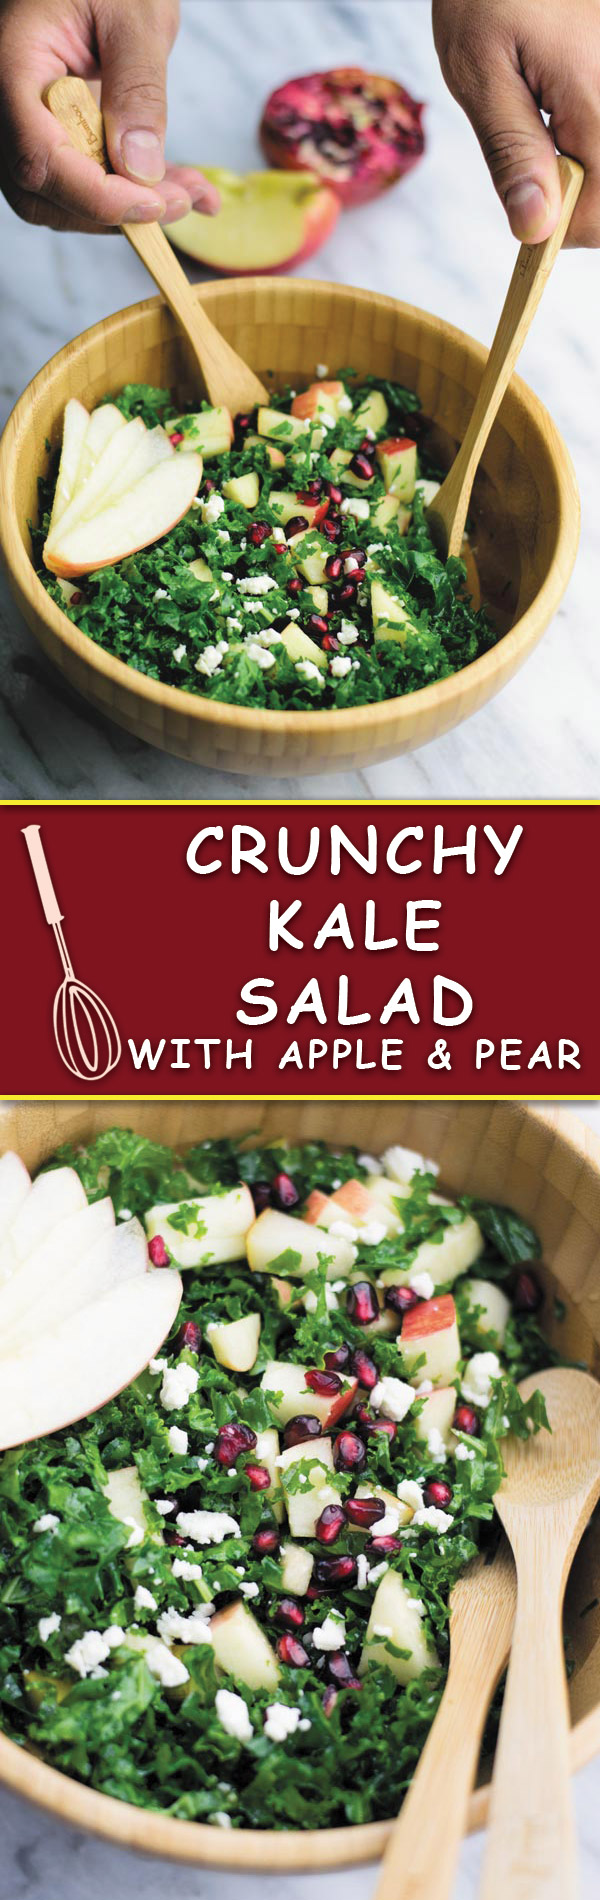 Crunchy Kale Salad - Trying to eat healthier but looking for SIMPLE & DELICIOUS SALADS? This crunchy kale salad with finely chopped kale, apples, pear and feta and a light dressing makes for a yummy fresh salad!